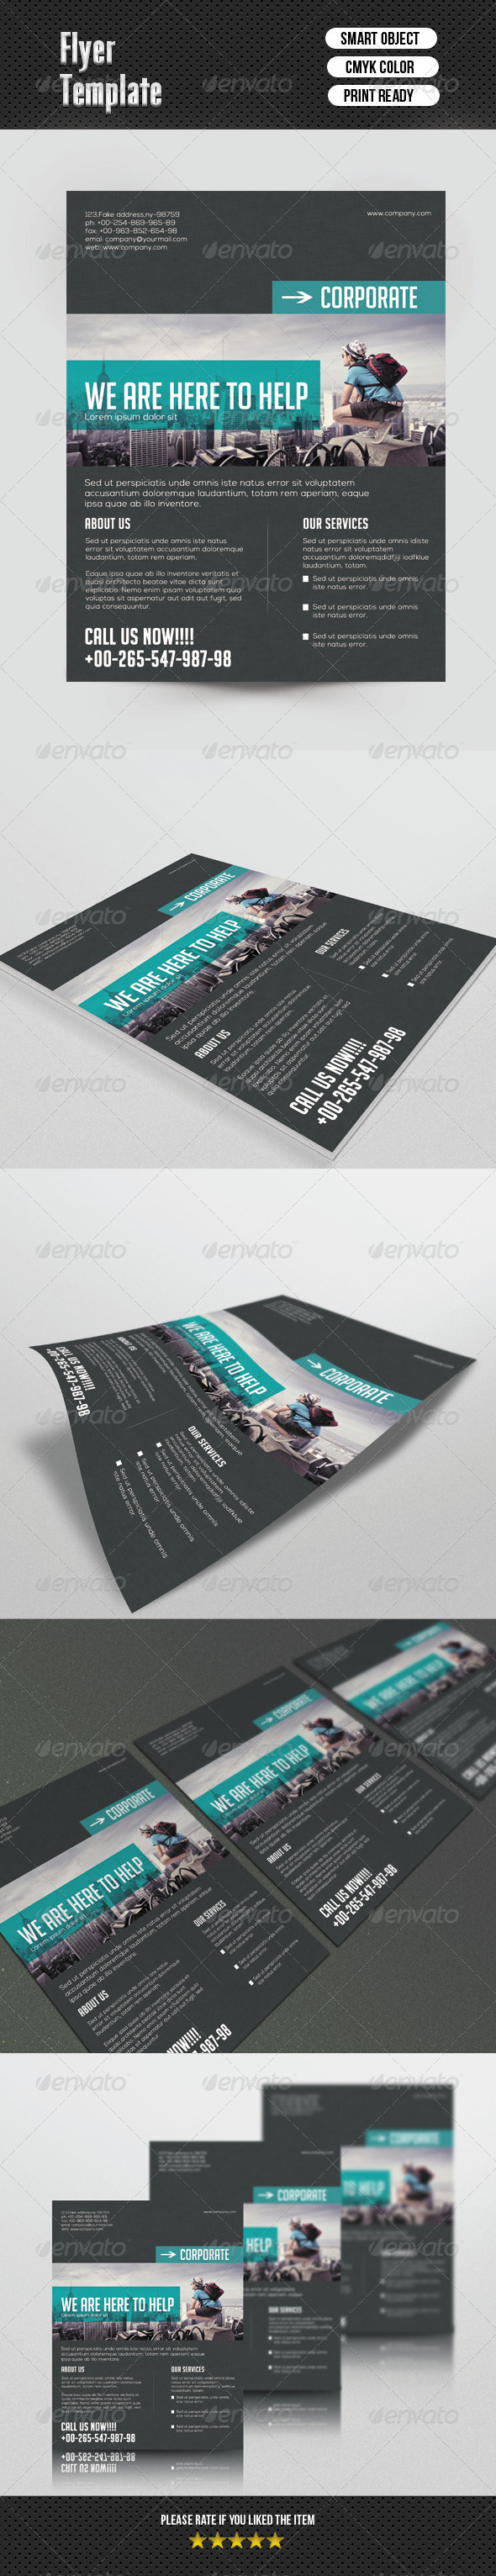 GraphicRiver Minimal Flyer Template 6766519